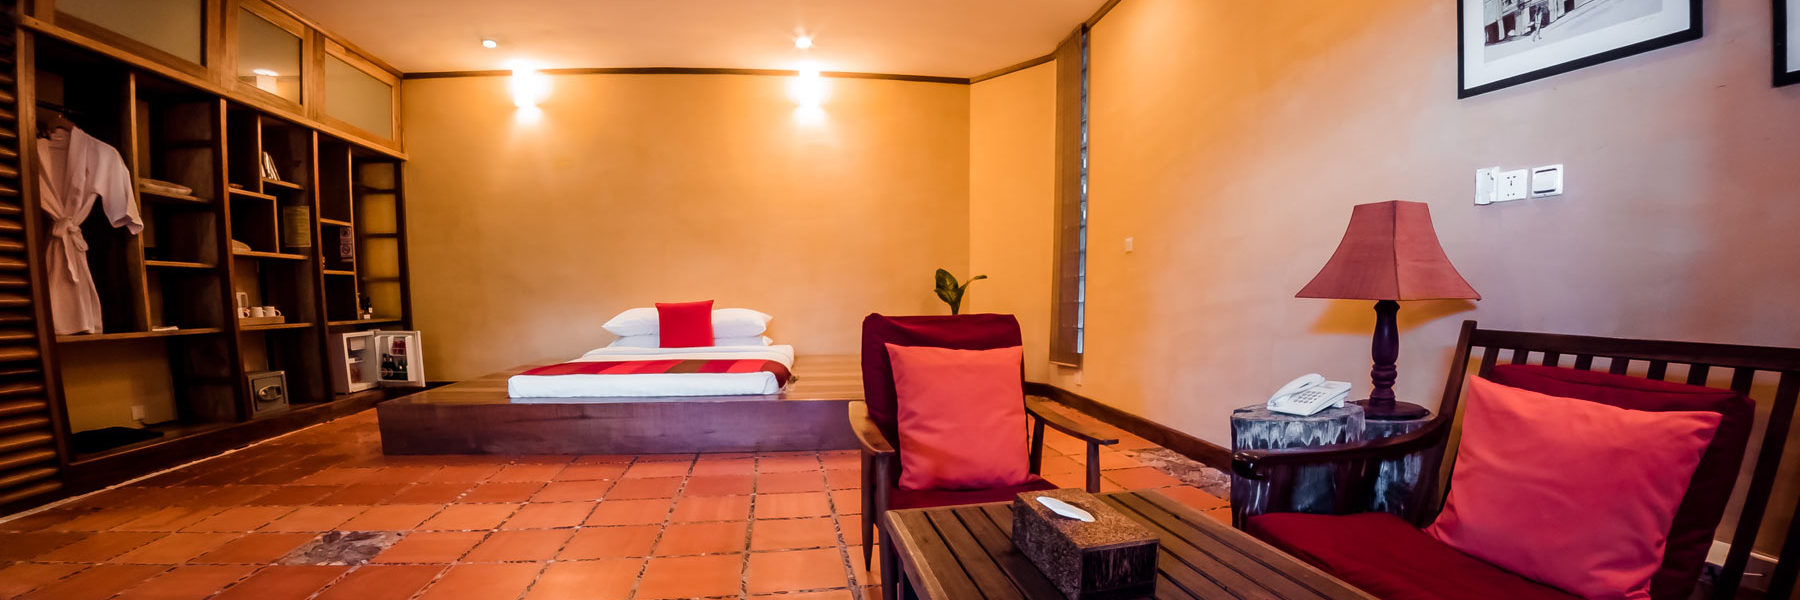 Large Cave Room fully furnished with a double bed, small fridge, small safe, wardrobe and telephone to the hotel reception in Veranda Natural Resort, Kep - Cambodia.